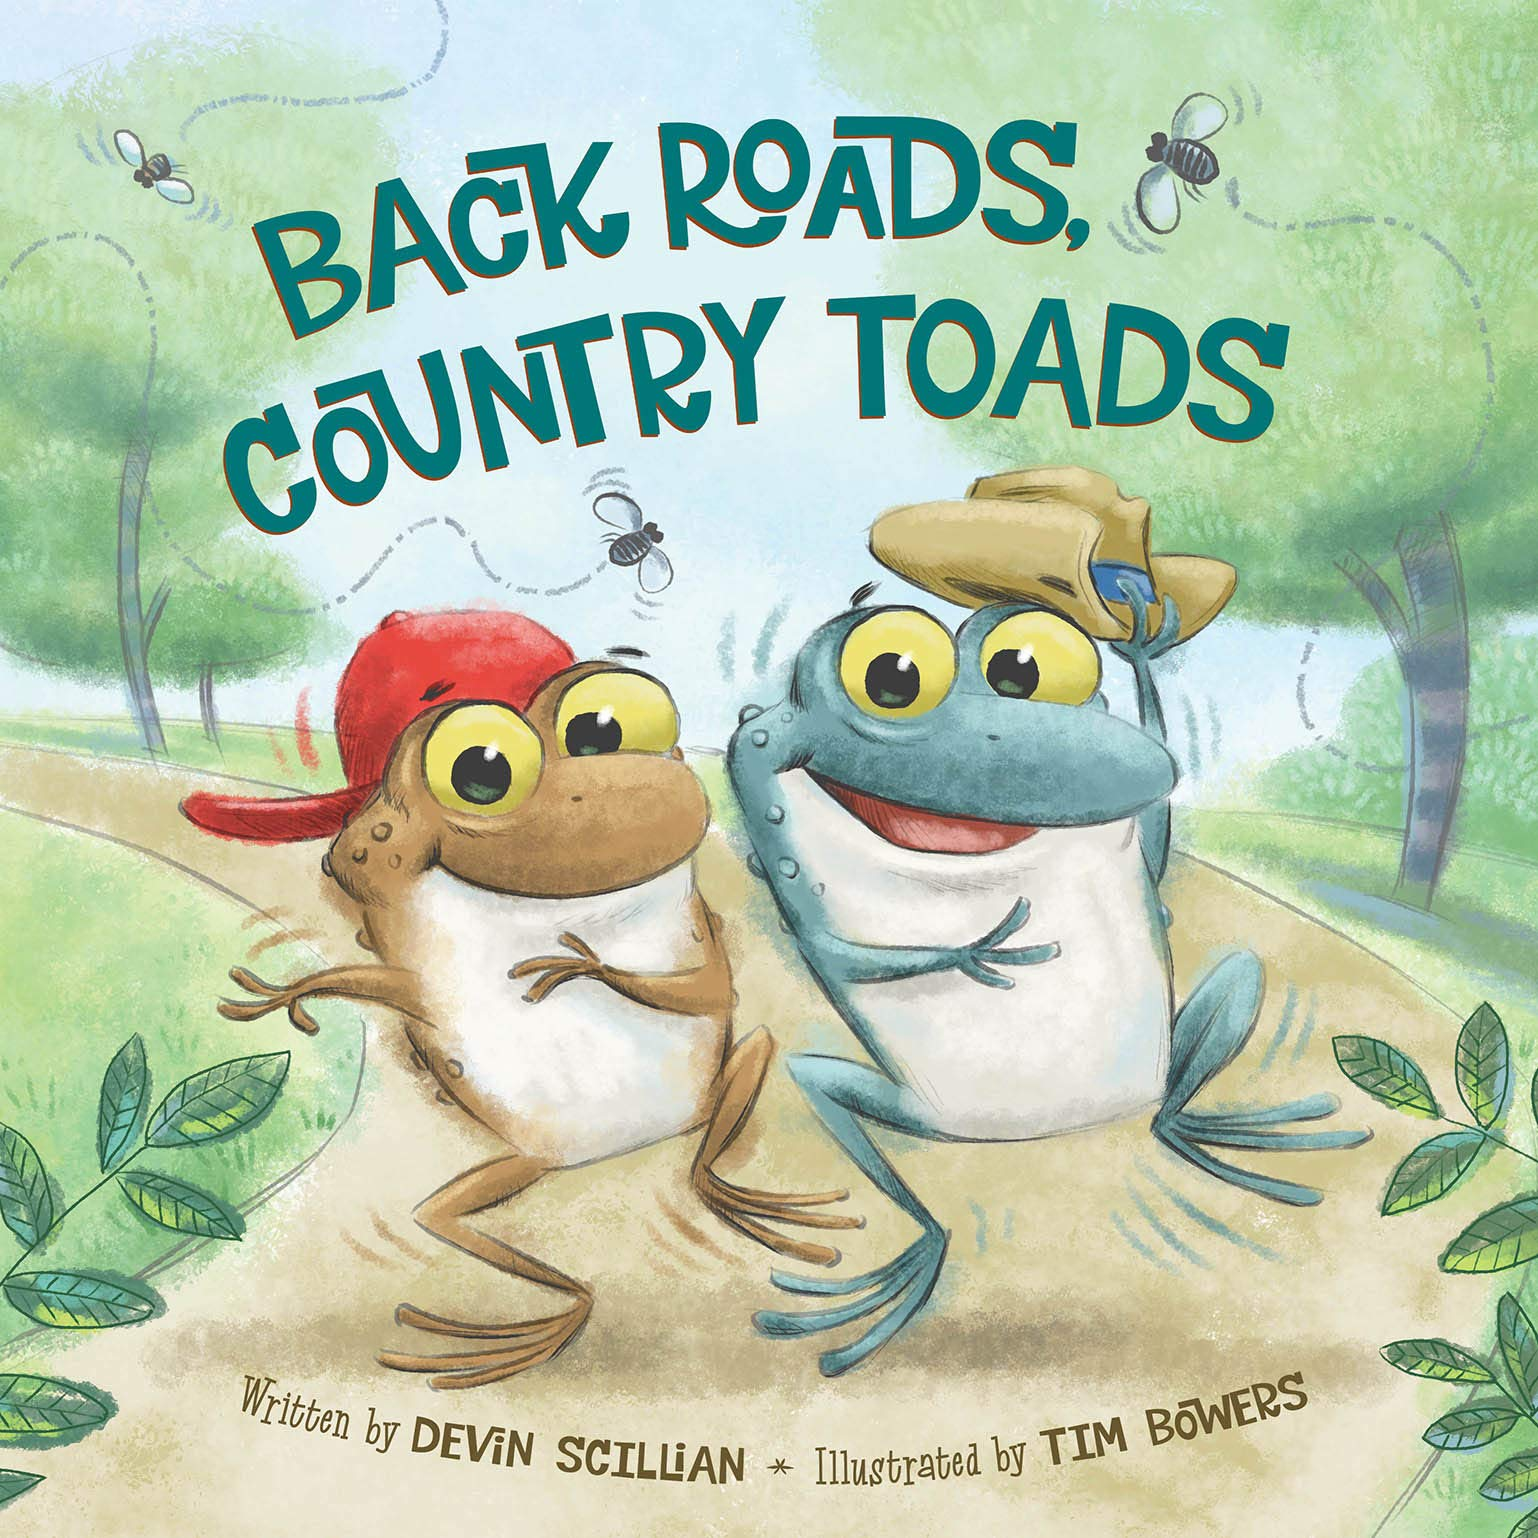 Cover of Backroads, Country Toads by Devin Scillian and Tim Bowers. TOADally awesome!